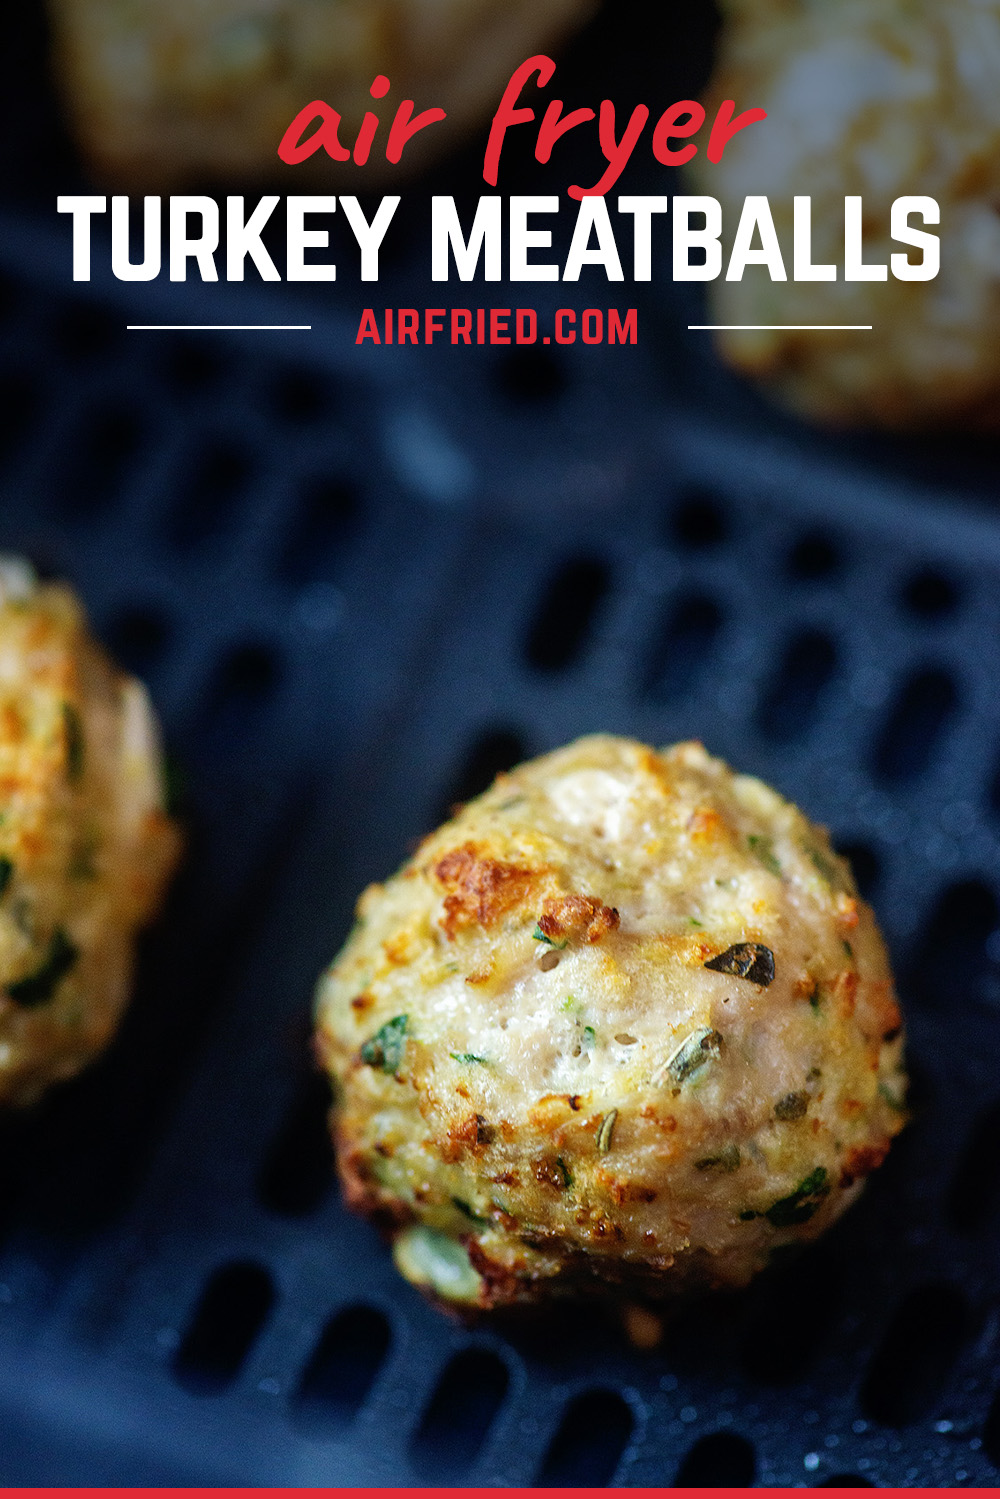 Air fryer turkey meatballs are simple, fast, and perfect for quick meal or appetizers!